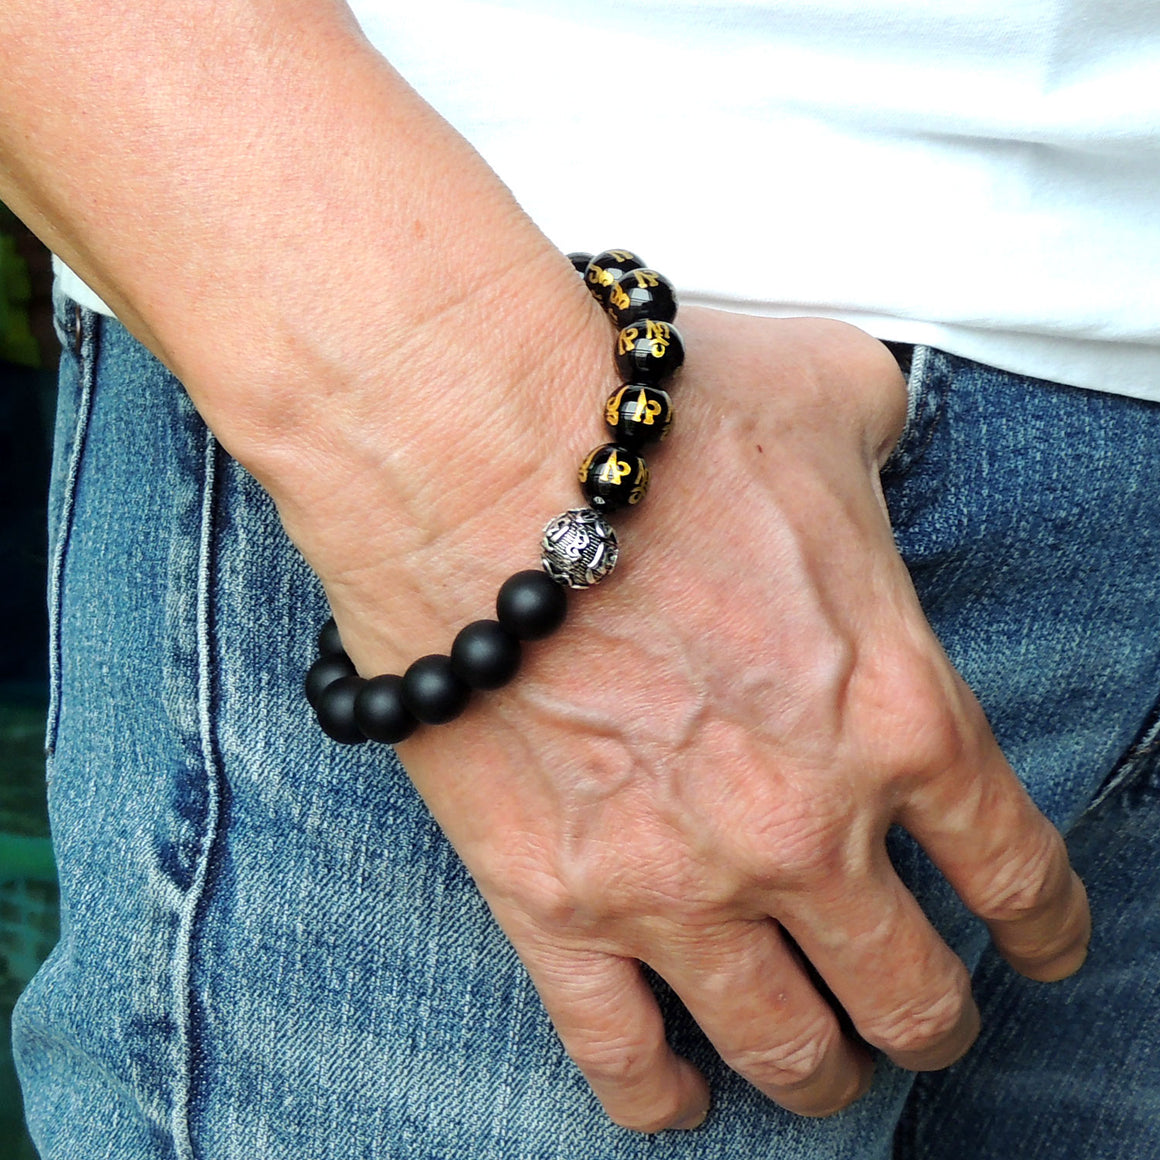 Handmade Adjustable Braided Bracelet - Men's Women's Custom Jewelry, Protection with 10mm Bright & Matte Black Onyx Healing Gemstones, Gold Hot Stamp, Genuine S925 Sterling Silver Meditation Bead BR1791